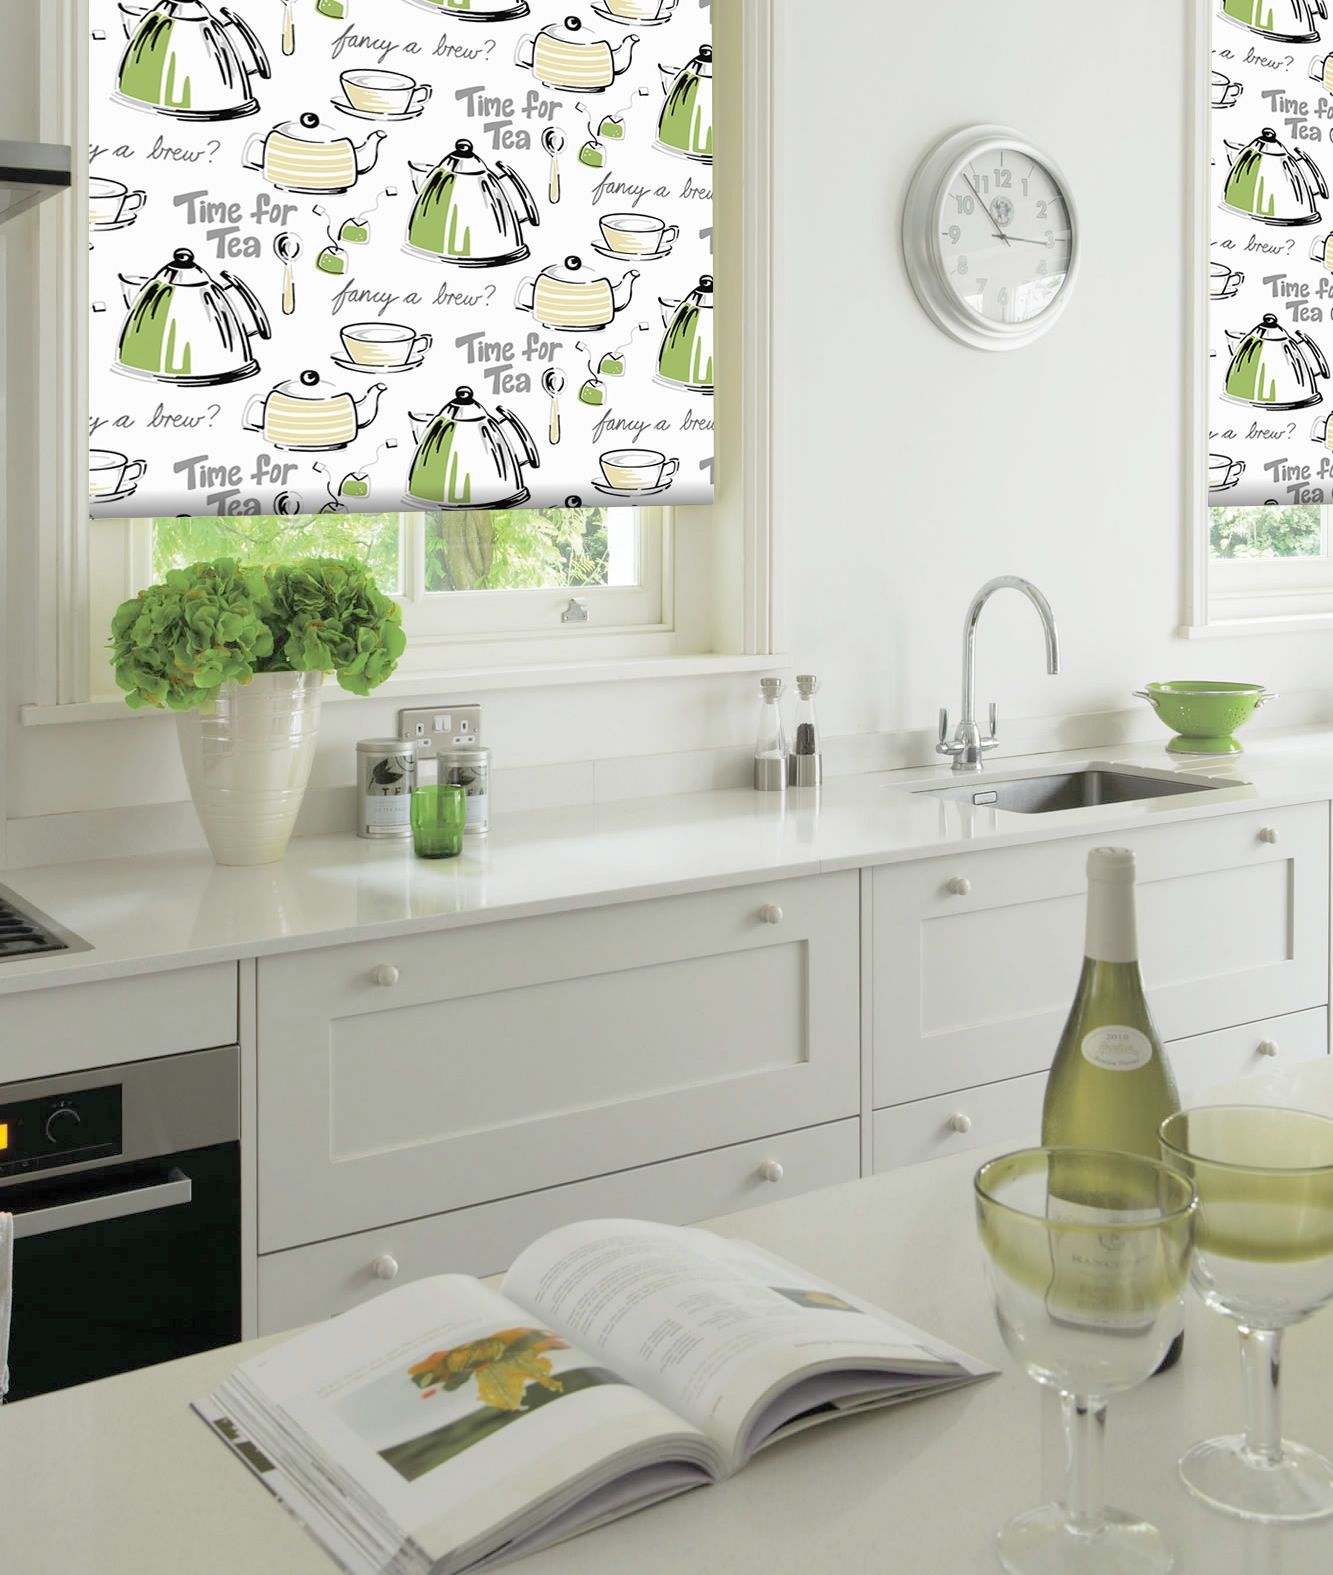 Gorgeous Time For Tea Jasmine Roller Blinds. Add Some